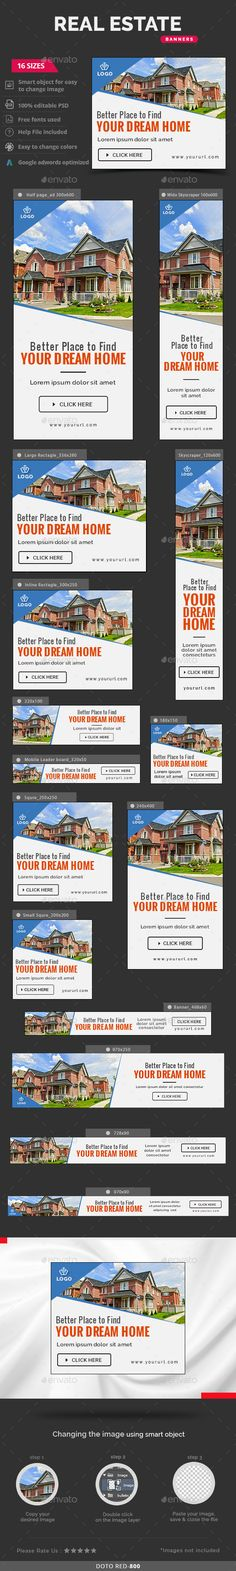 Real Estate Banners — Photoshop PSD #adroll #social media • Available here → https://graphicriver.net/item/real-estate-banners/13461870?ref=pxcr